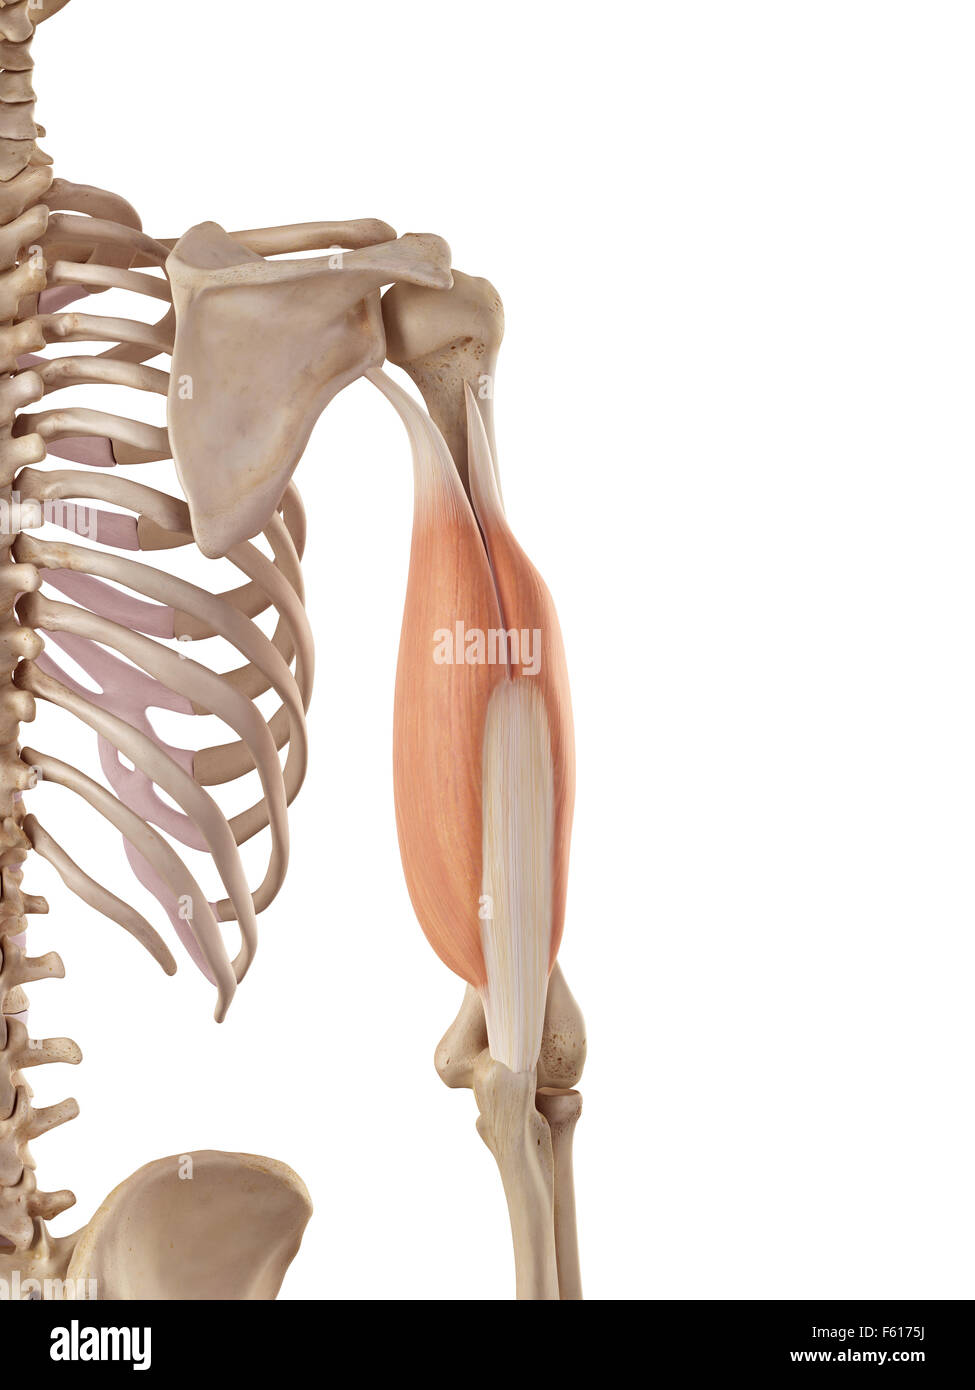 Upper Limb Muscle Stock Photos & Upper Limb Muscle Stock Images - Alamy